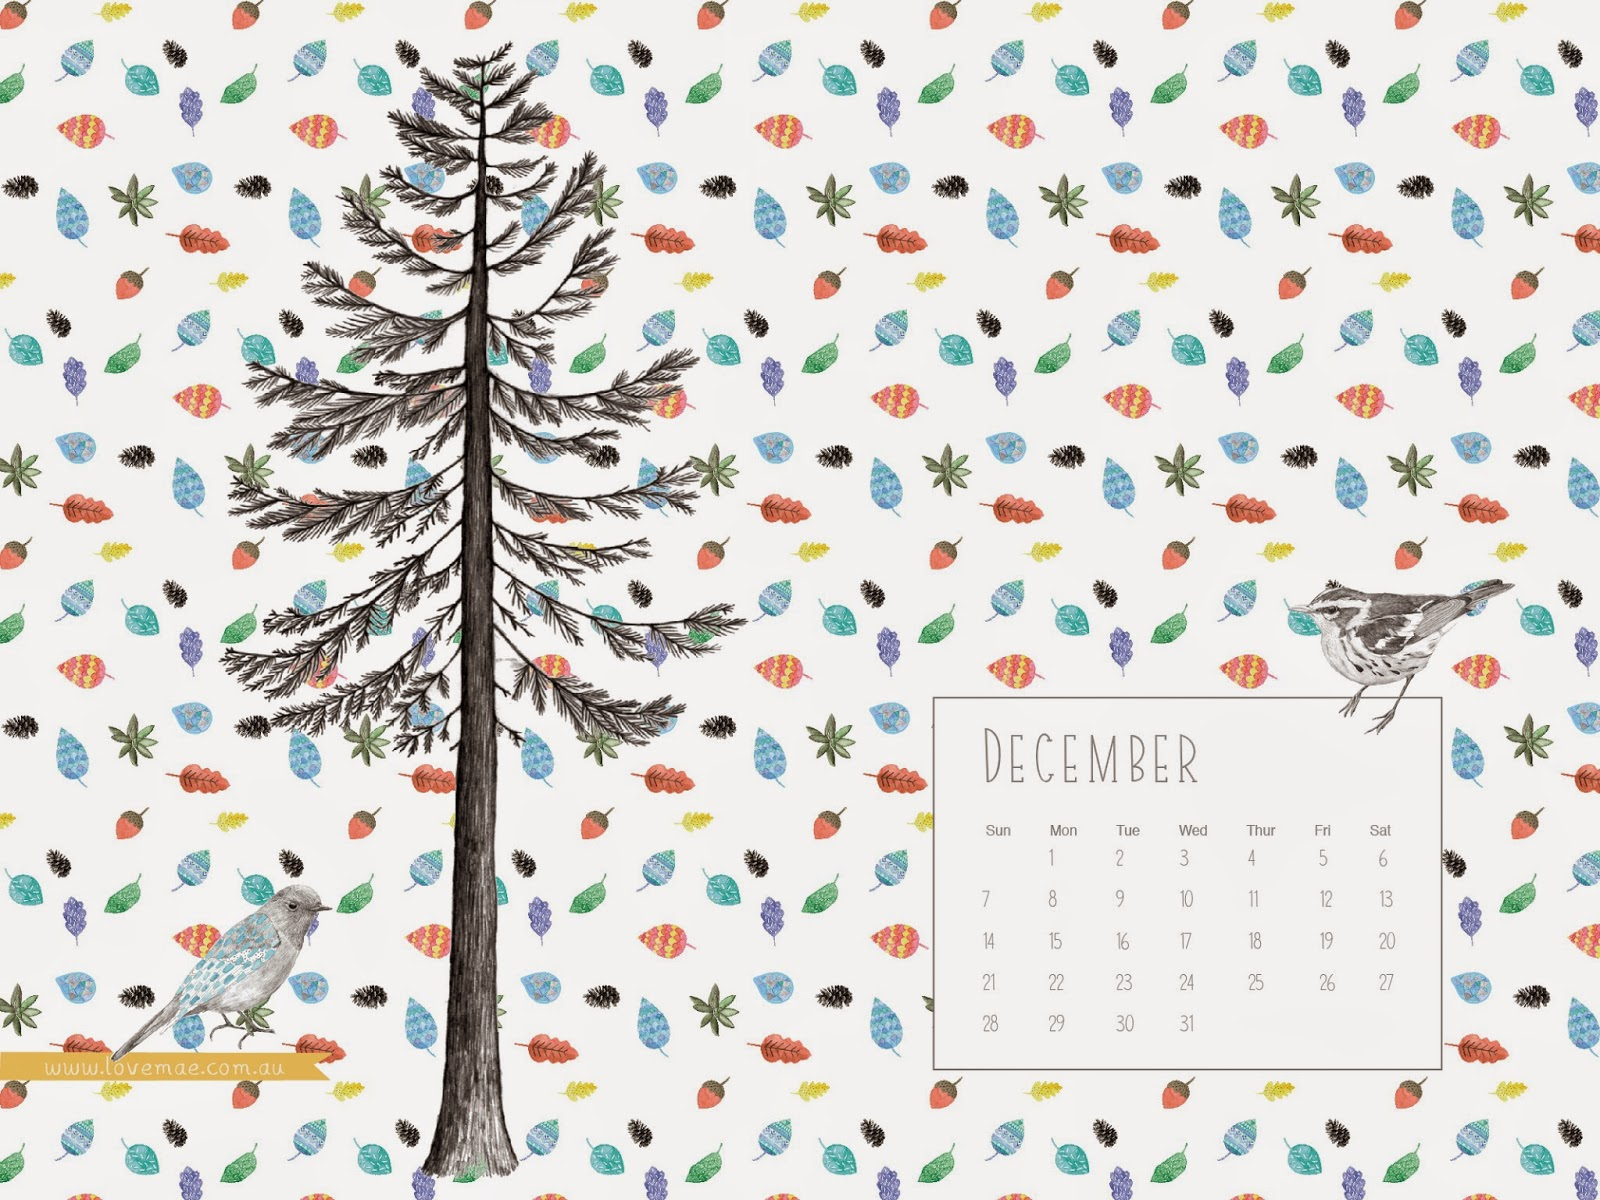 Calendar Wallpaper Love Mae : Computerkleider free desktop wallpaper im dezember